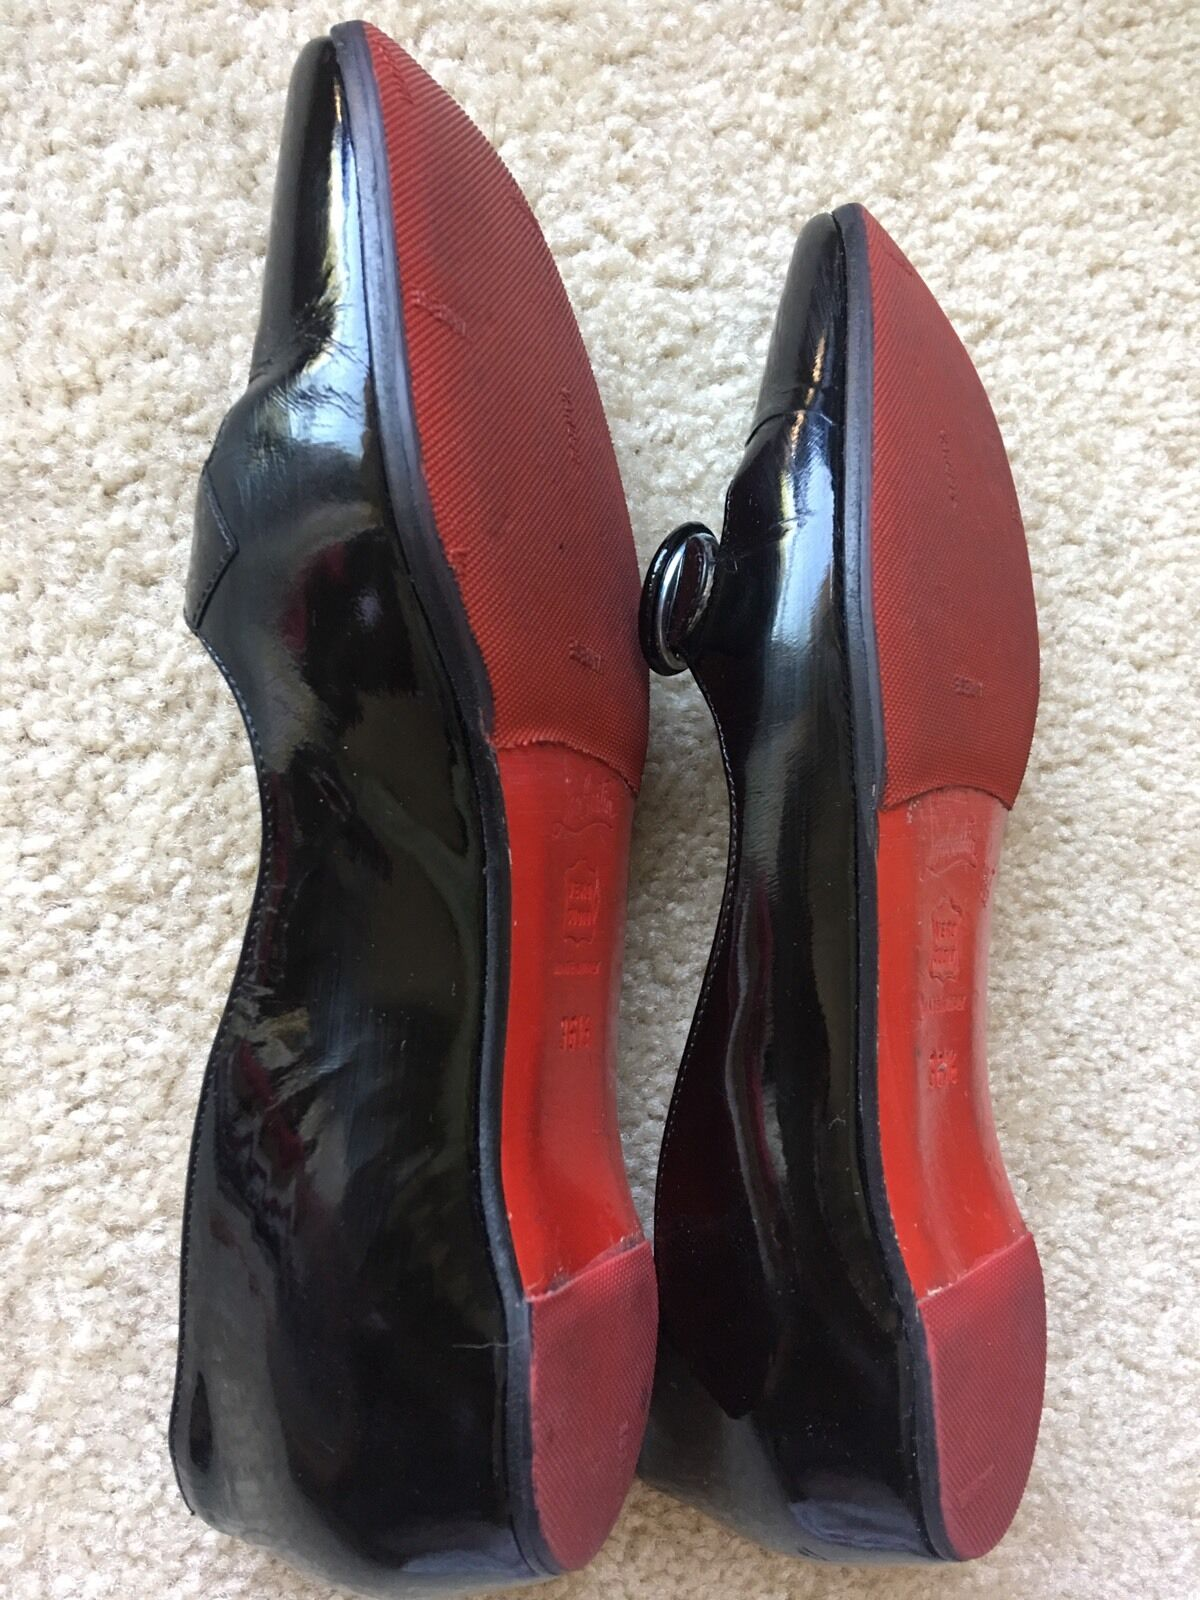 Auth Christian Louboutin Black Pattern Leather Leather Leather Ballerina Flats 36.5US-EUR36.5 1adc9f